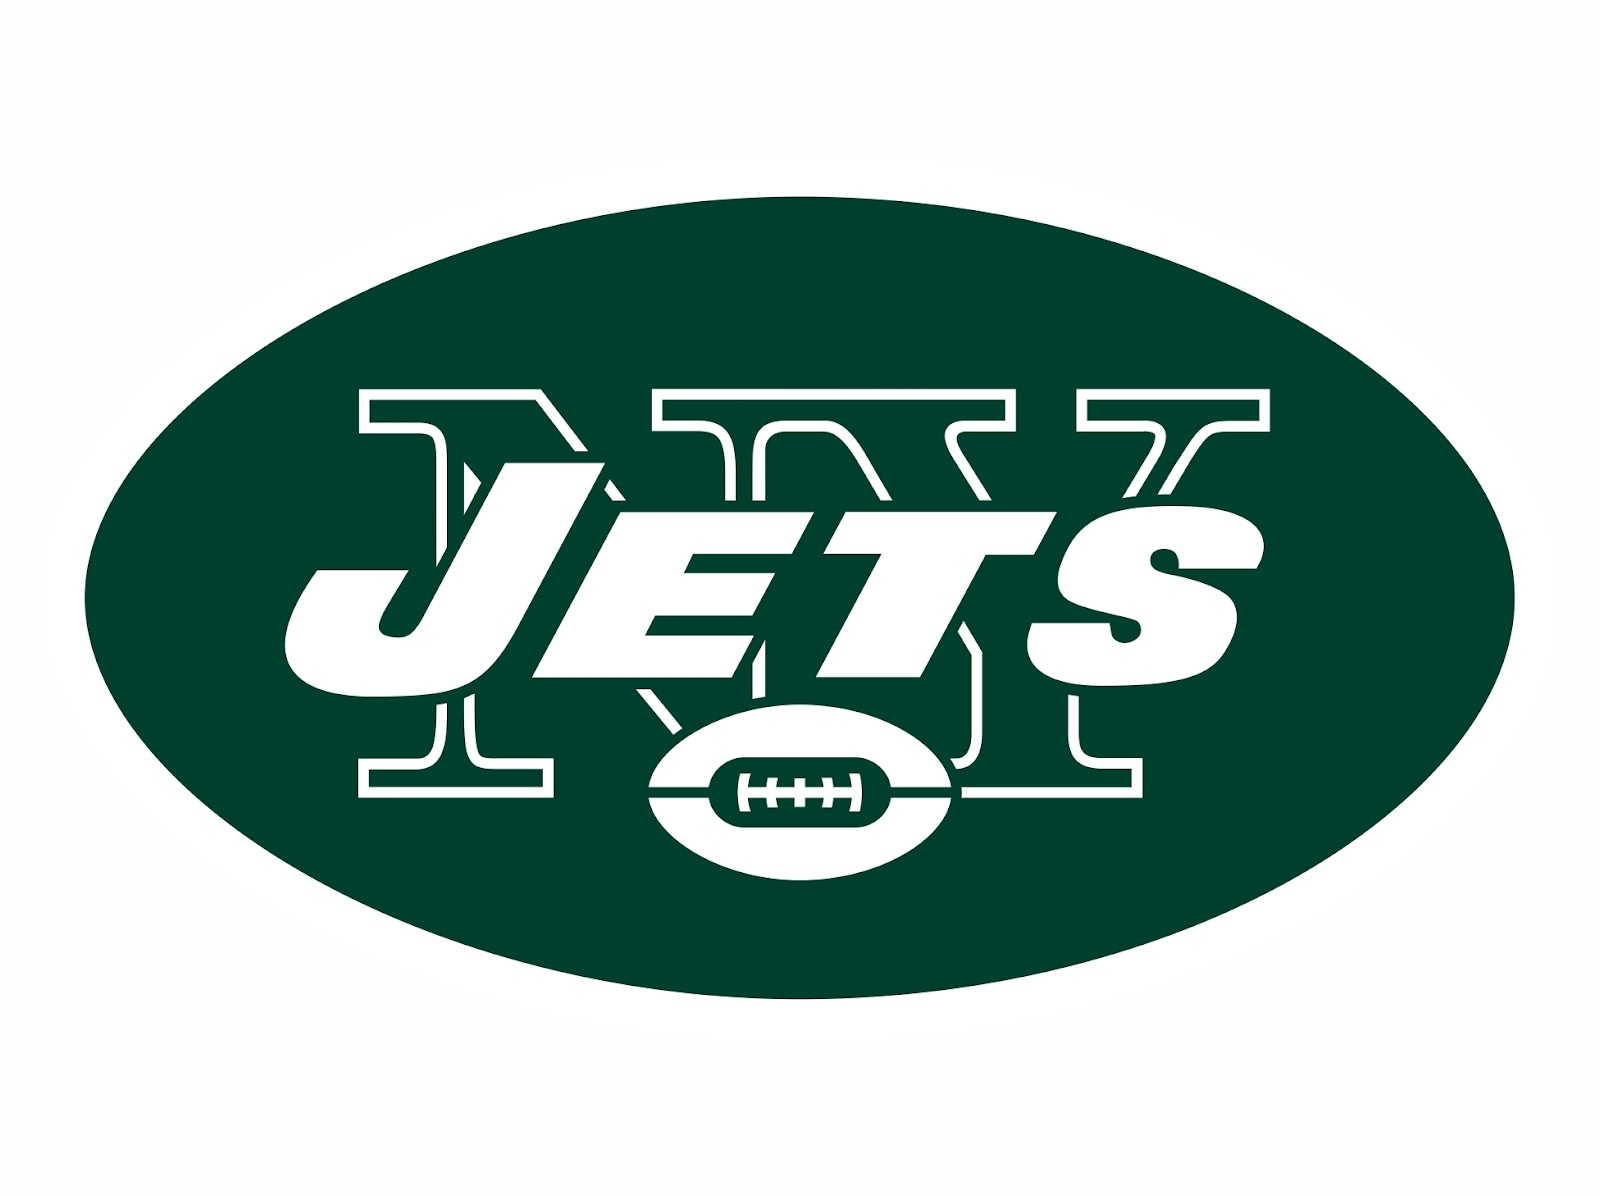 The new york jets logo colours can be found in an image format below. ESCUDOS DE EQUIPOS: NATIONAL FOTTBALL LEAGUE (NFL) USA ...